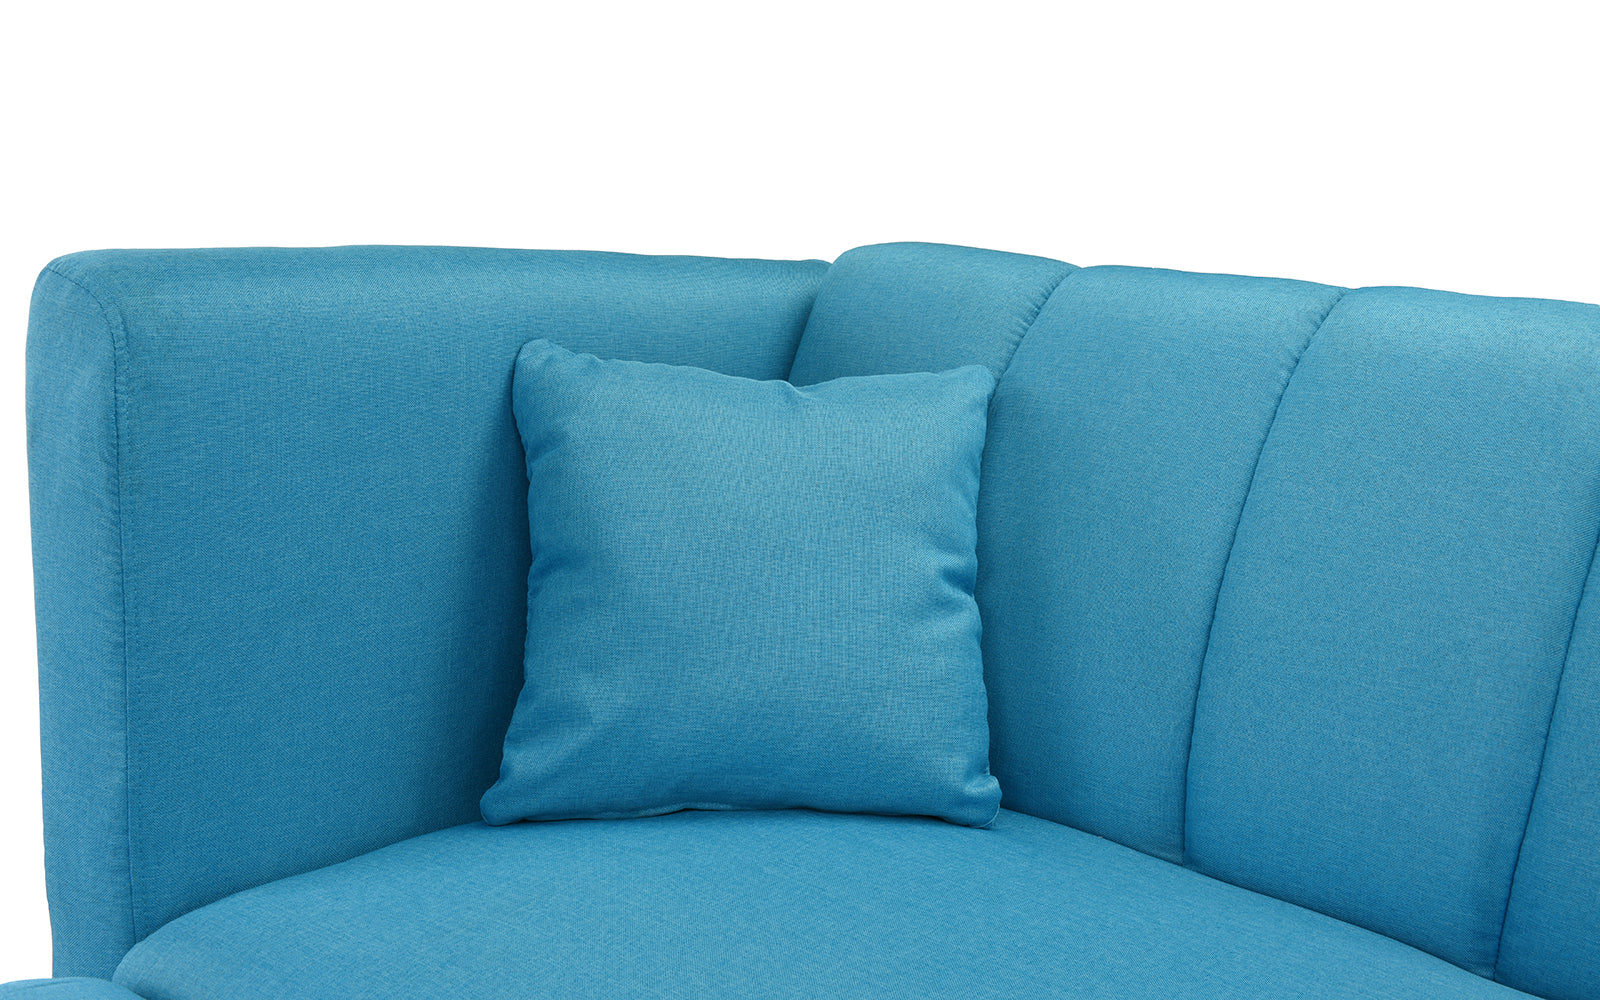 Terrific Esme Contemporary Loveseat Sleeper Futon With Chaise Lounge Alphanode Cool Chair Designs And Ideas Alphanodeonline